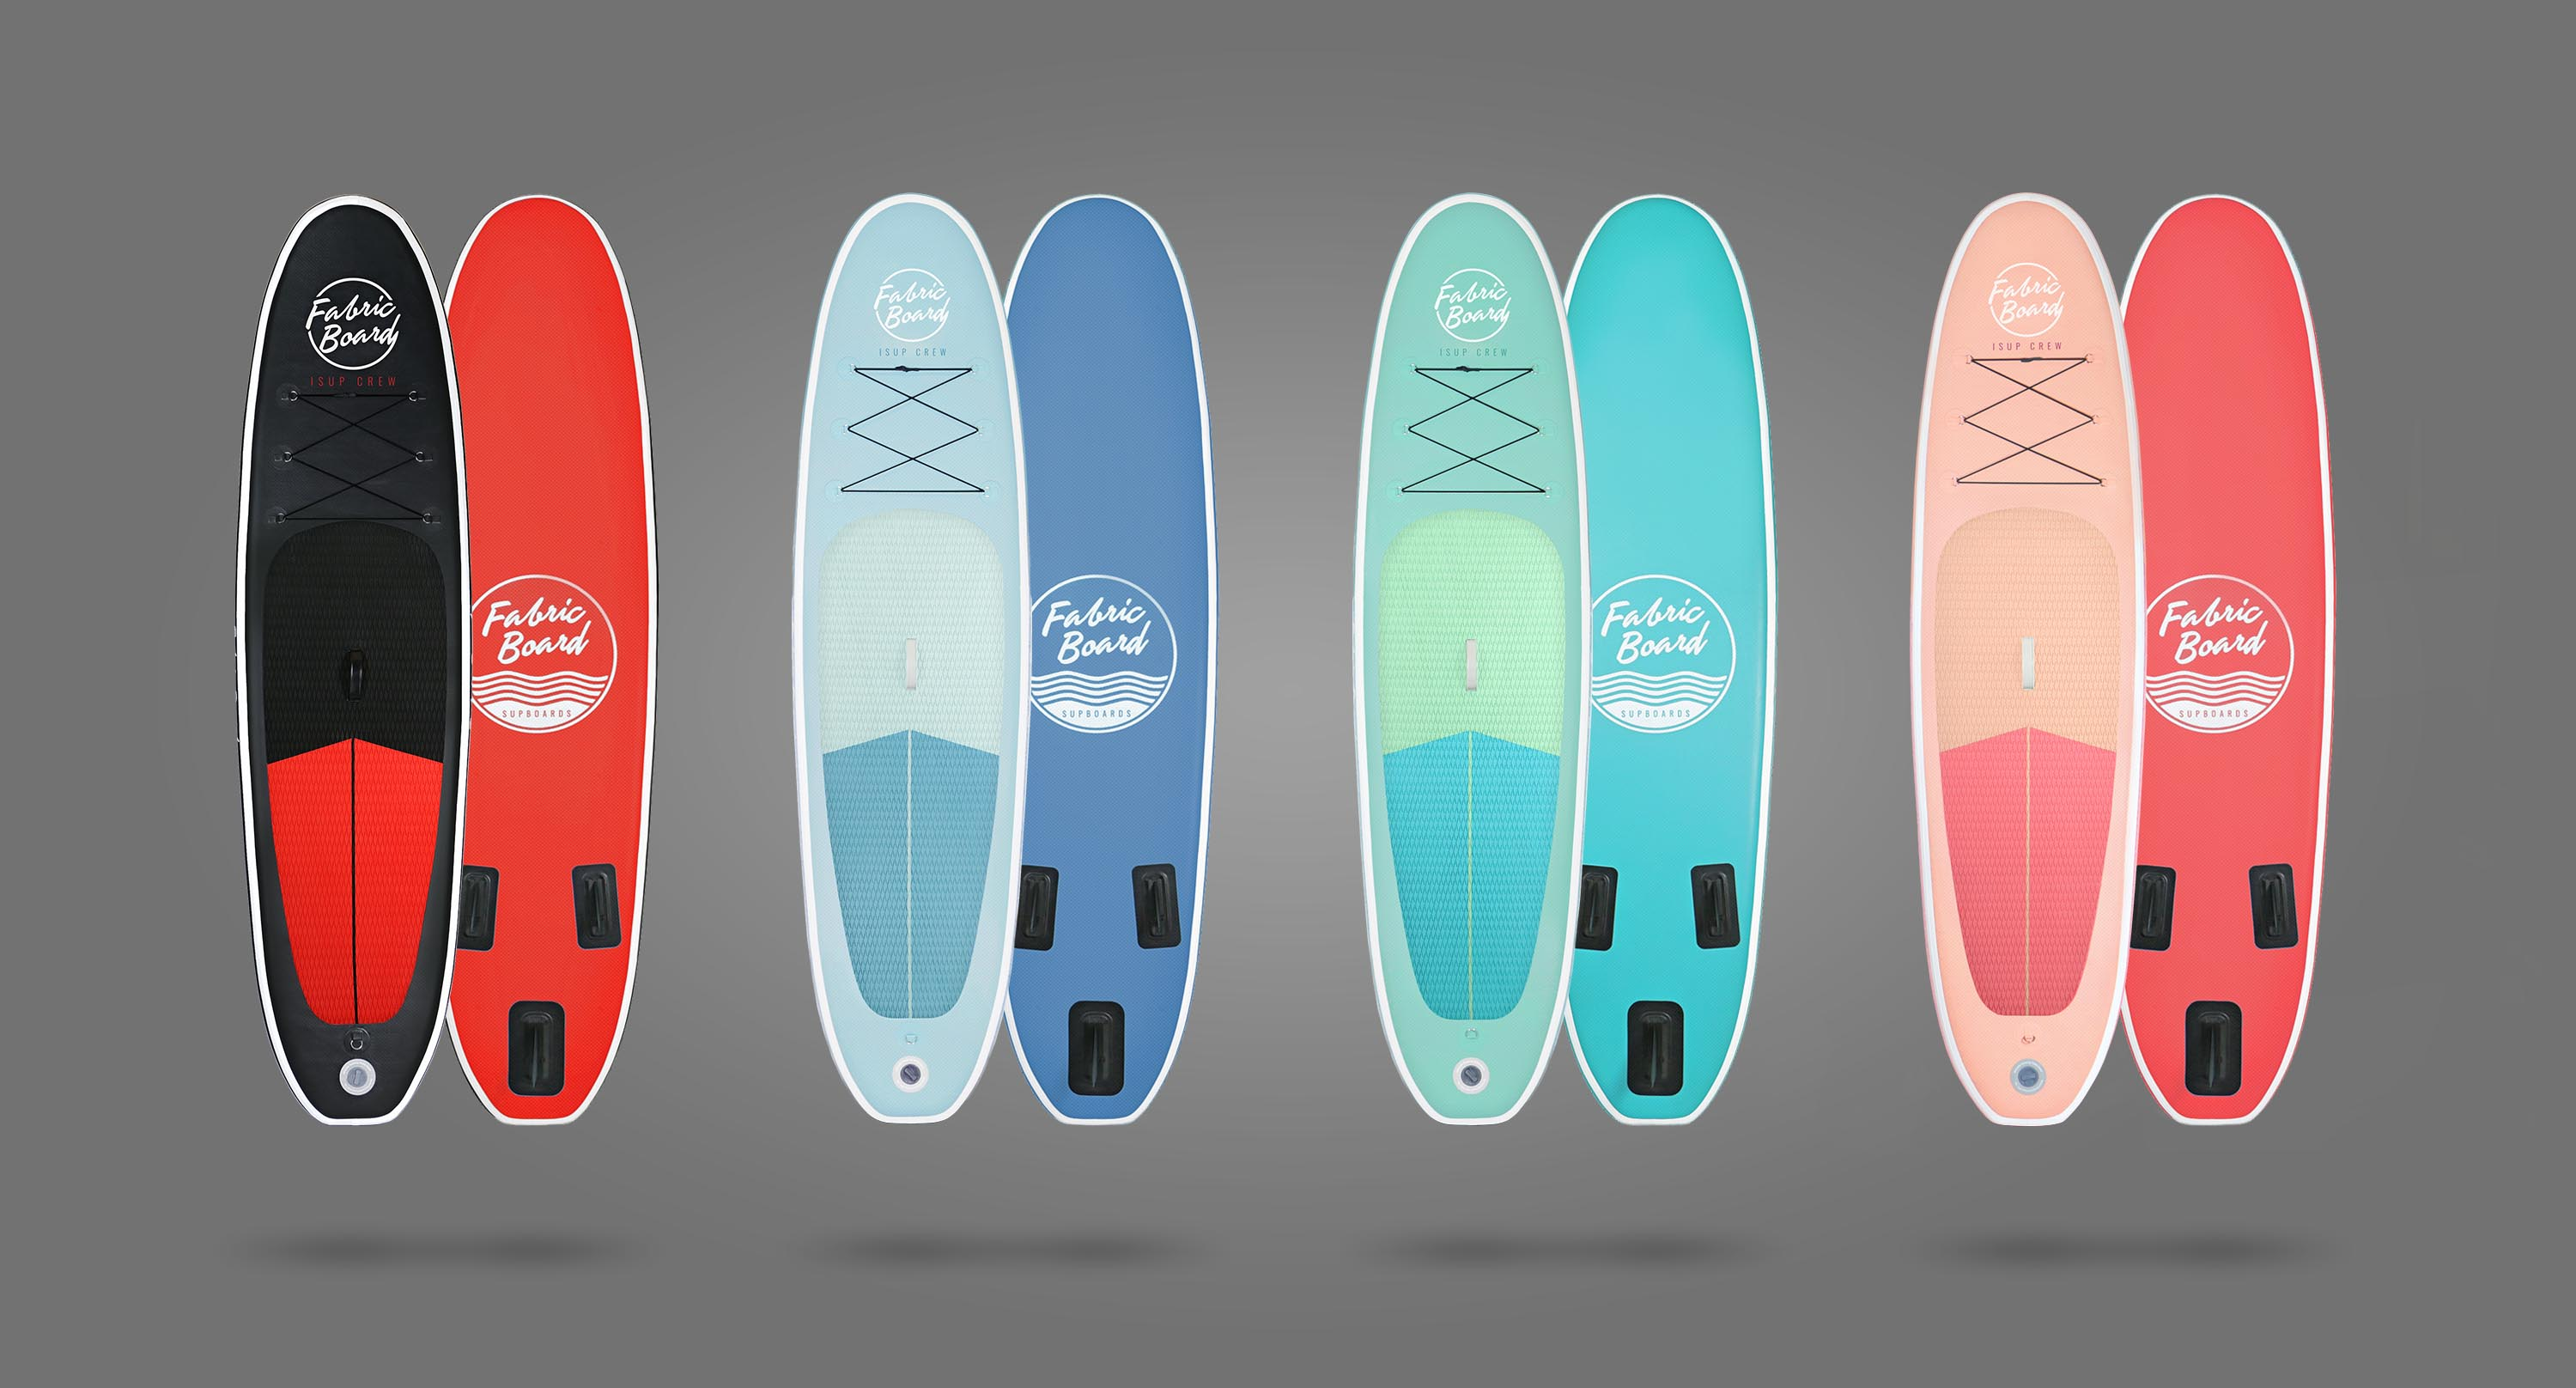 Paddle Surf Hinchable FABRICBOARD Color Azul Negra Roja Azul Verde Coral